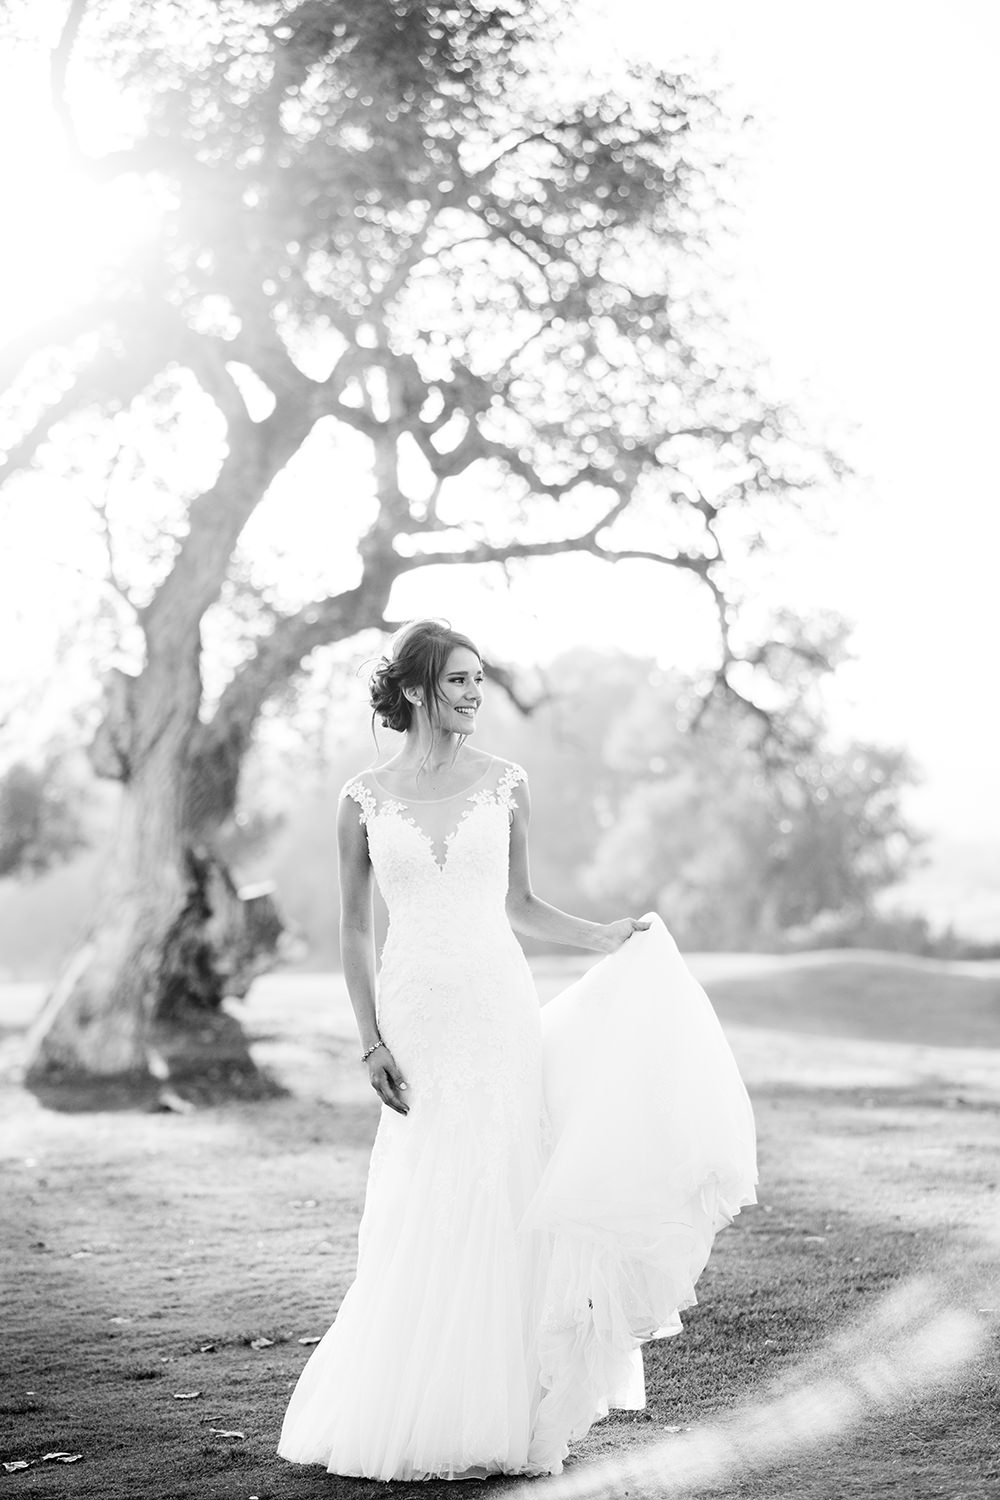 stunning bride image at carlton oaks country club black and white